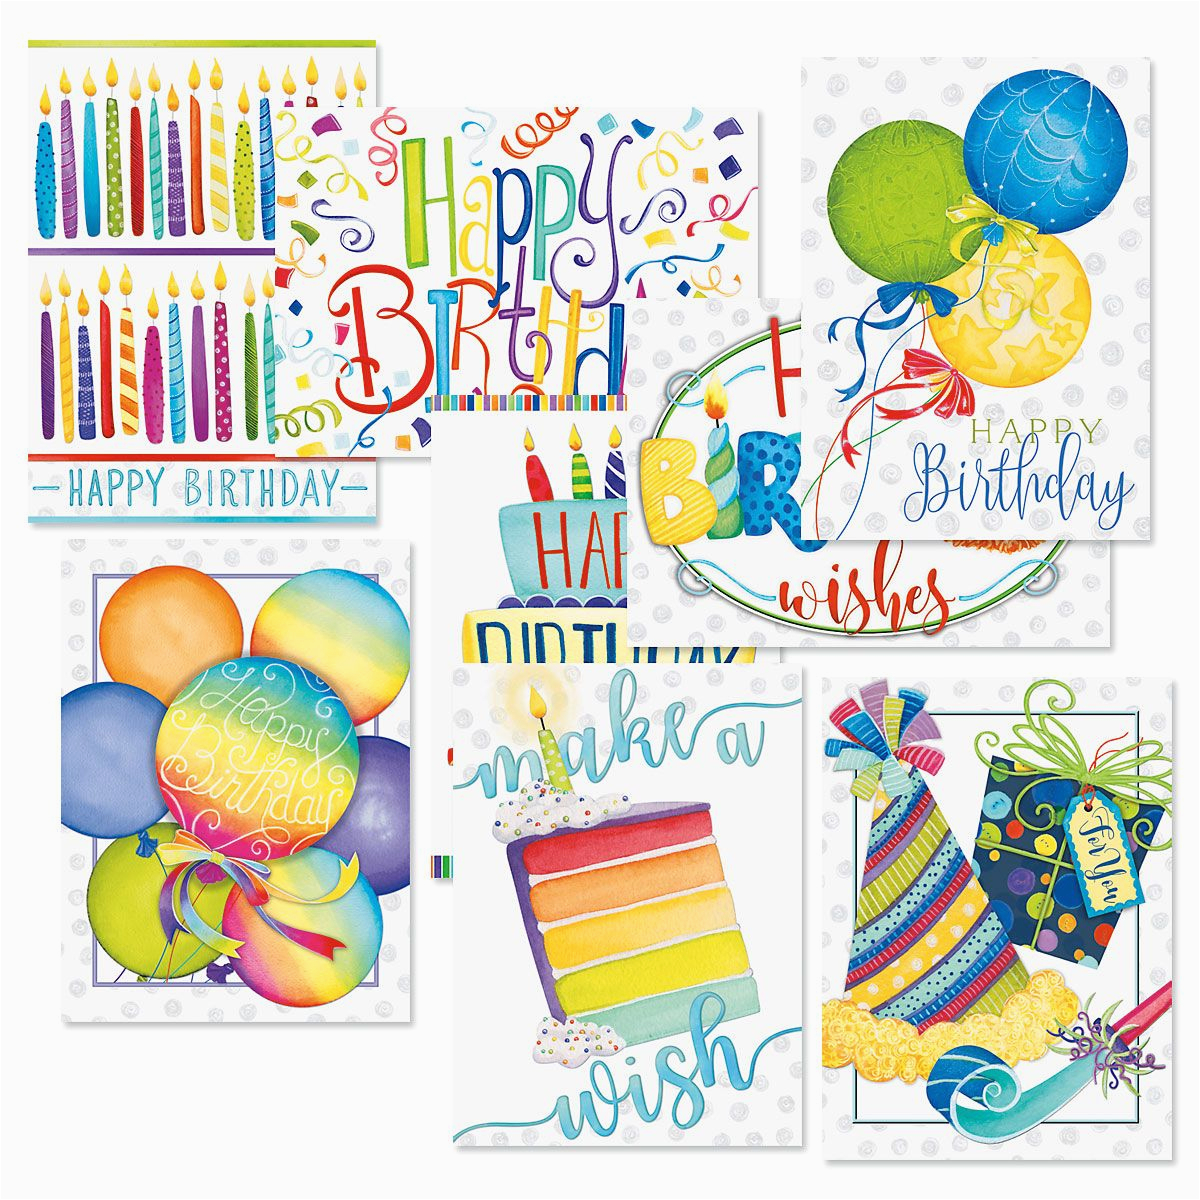 make a wish birthday greeting cards value pack current